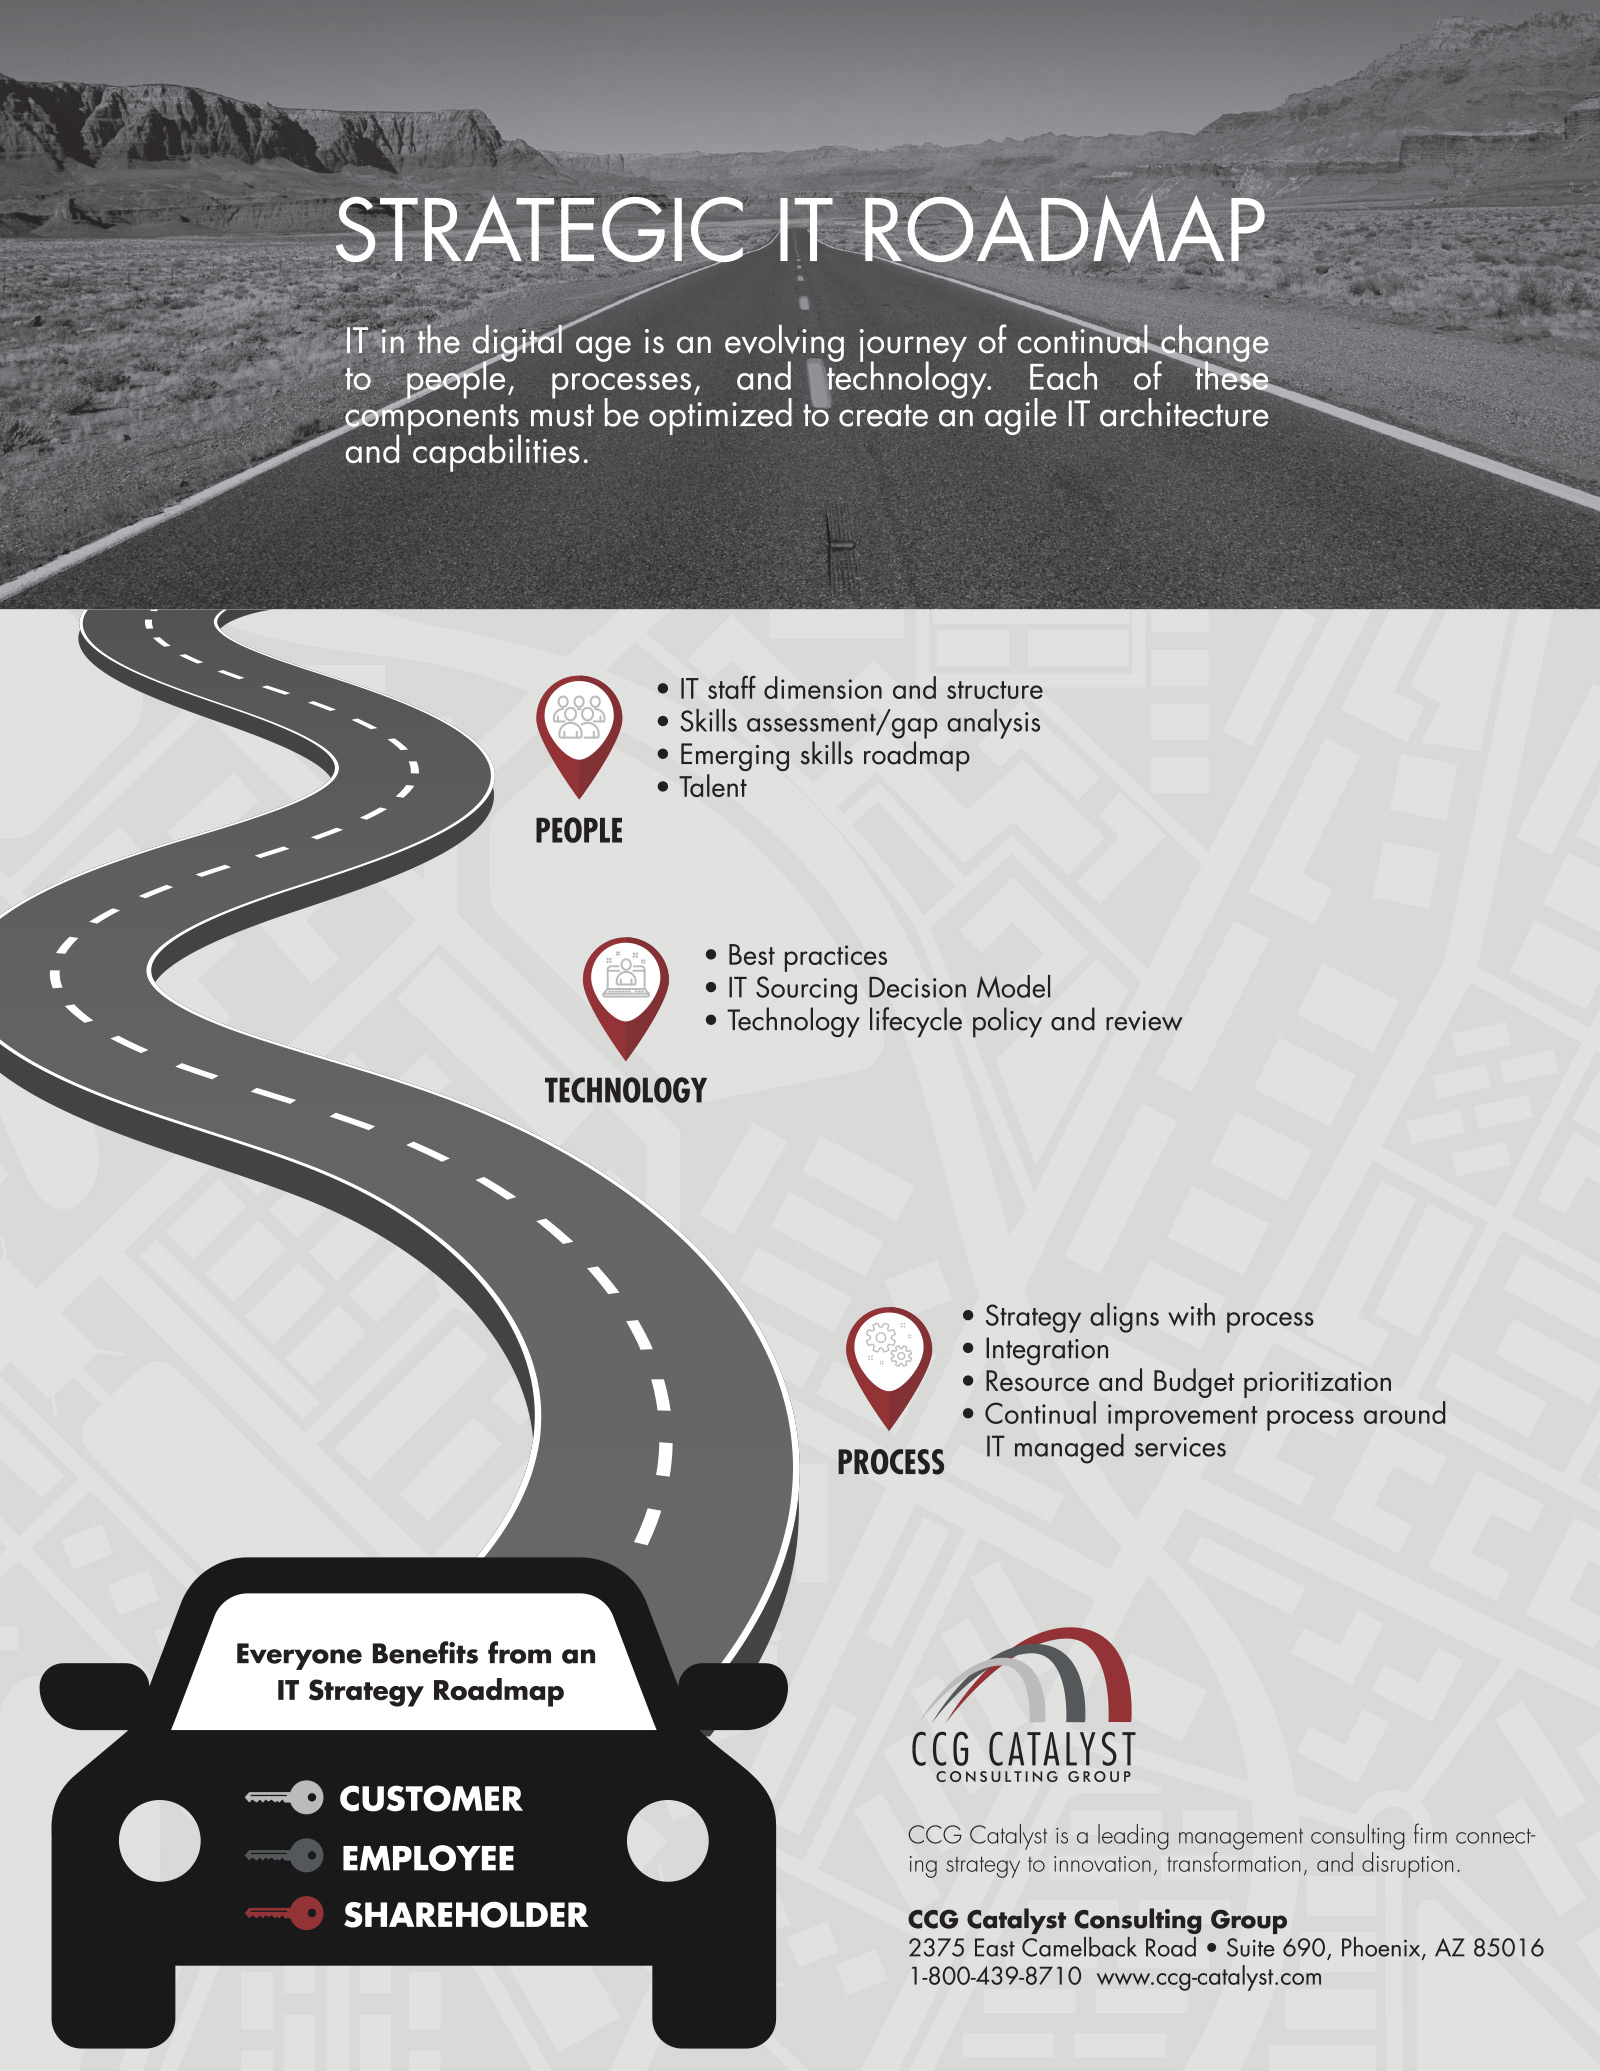 Time to Create a Strategic IT Roadmap